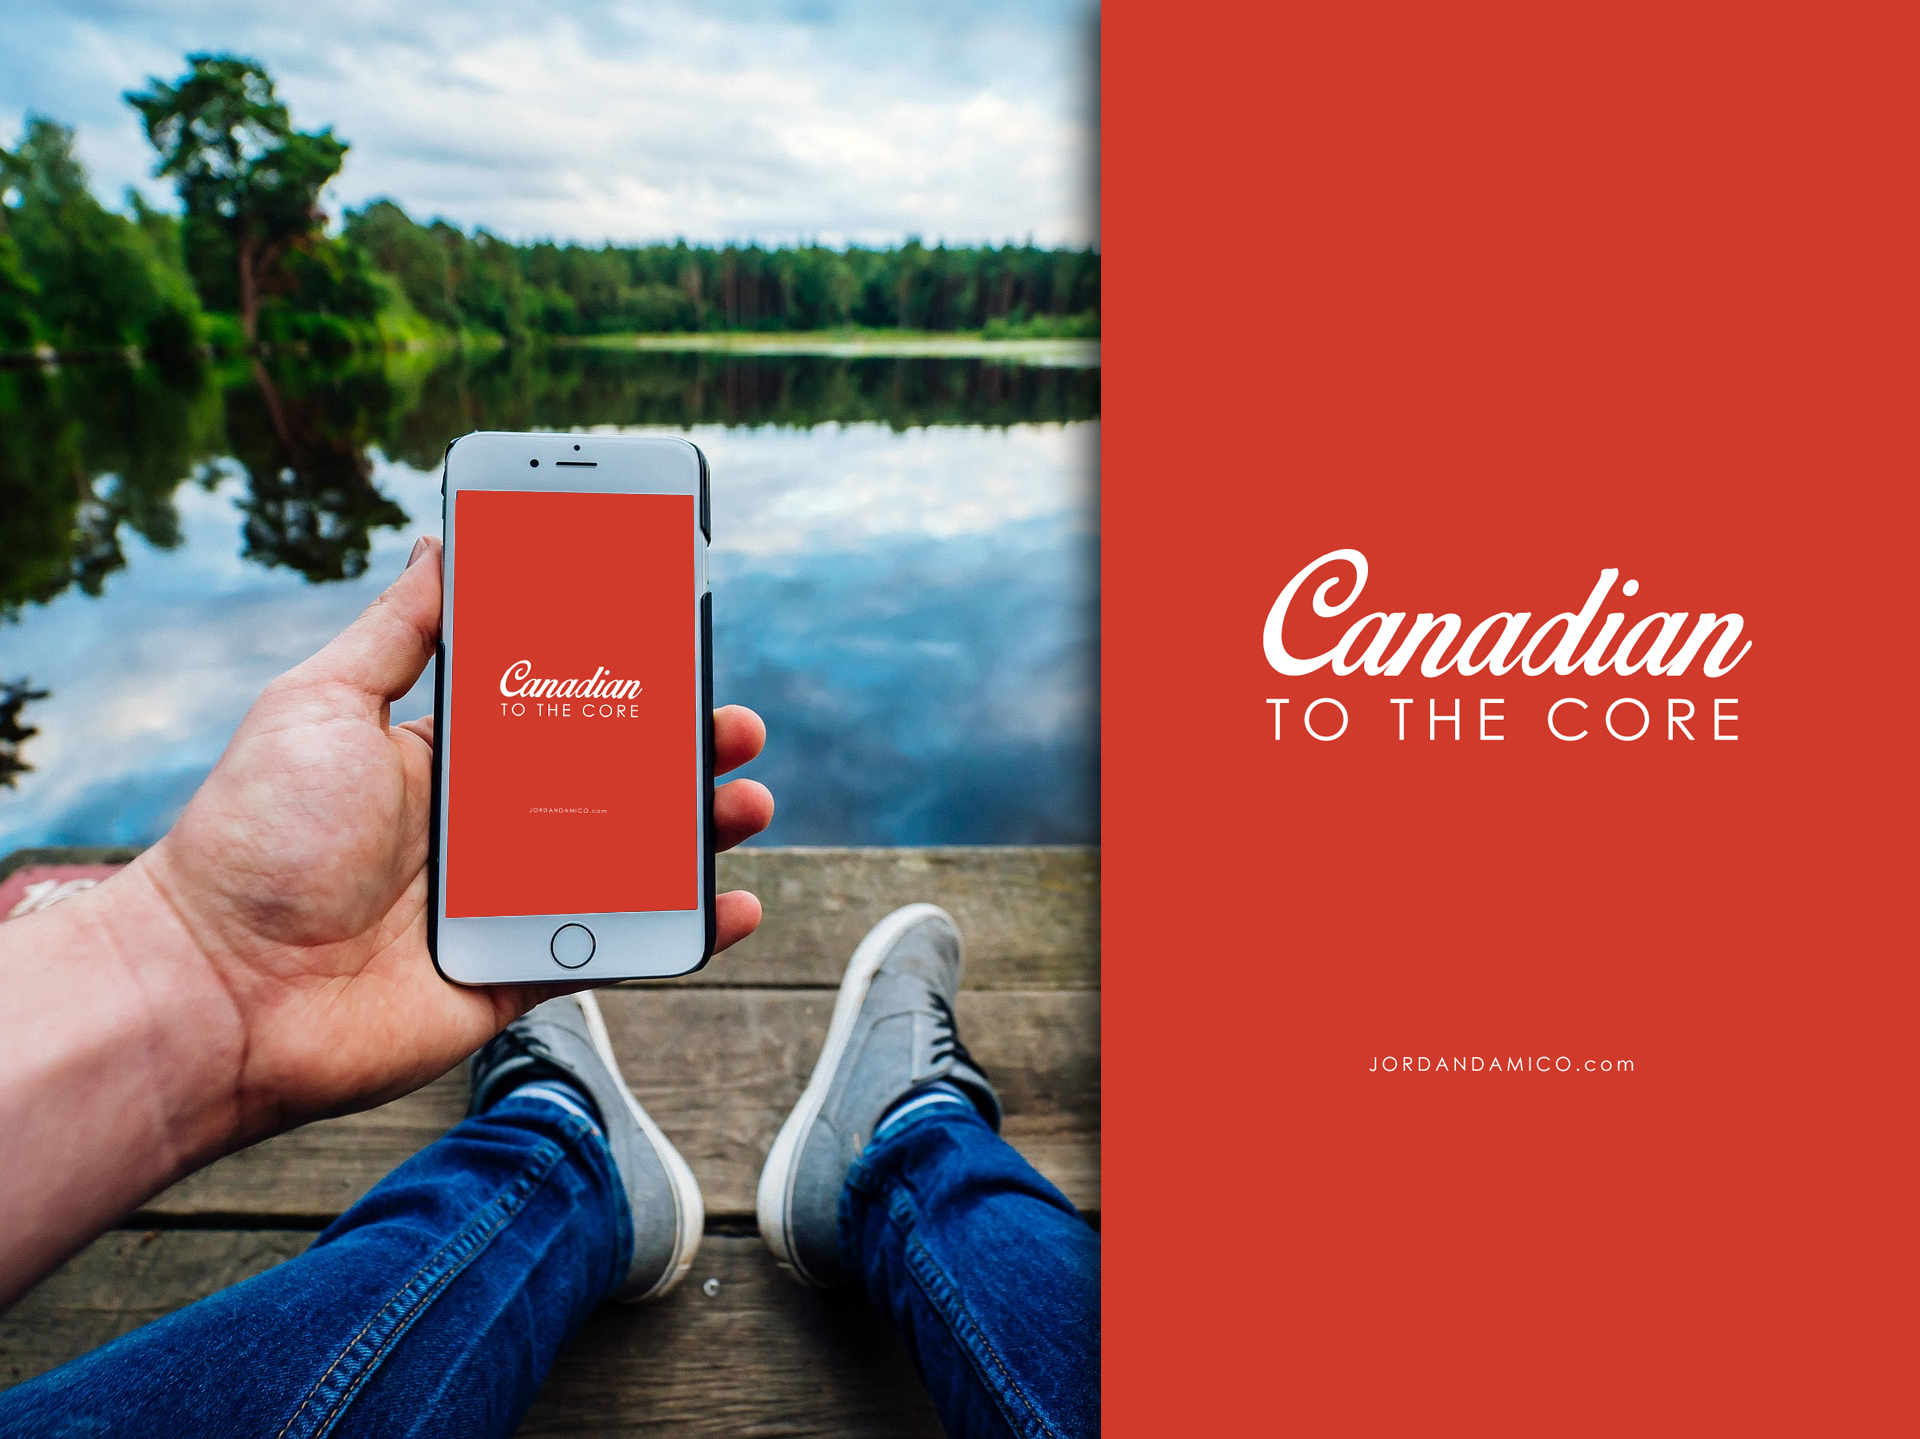 Free Canada150 iPhone wallpaper download